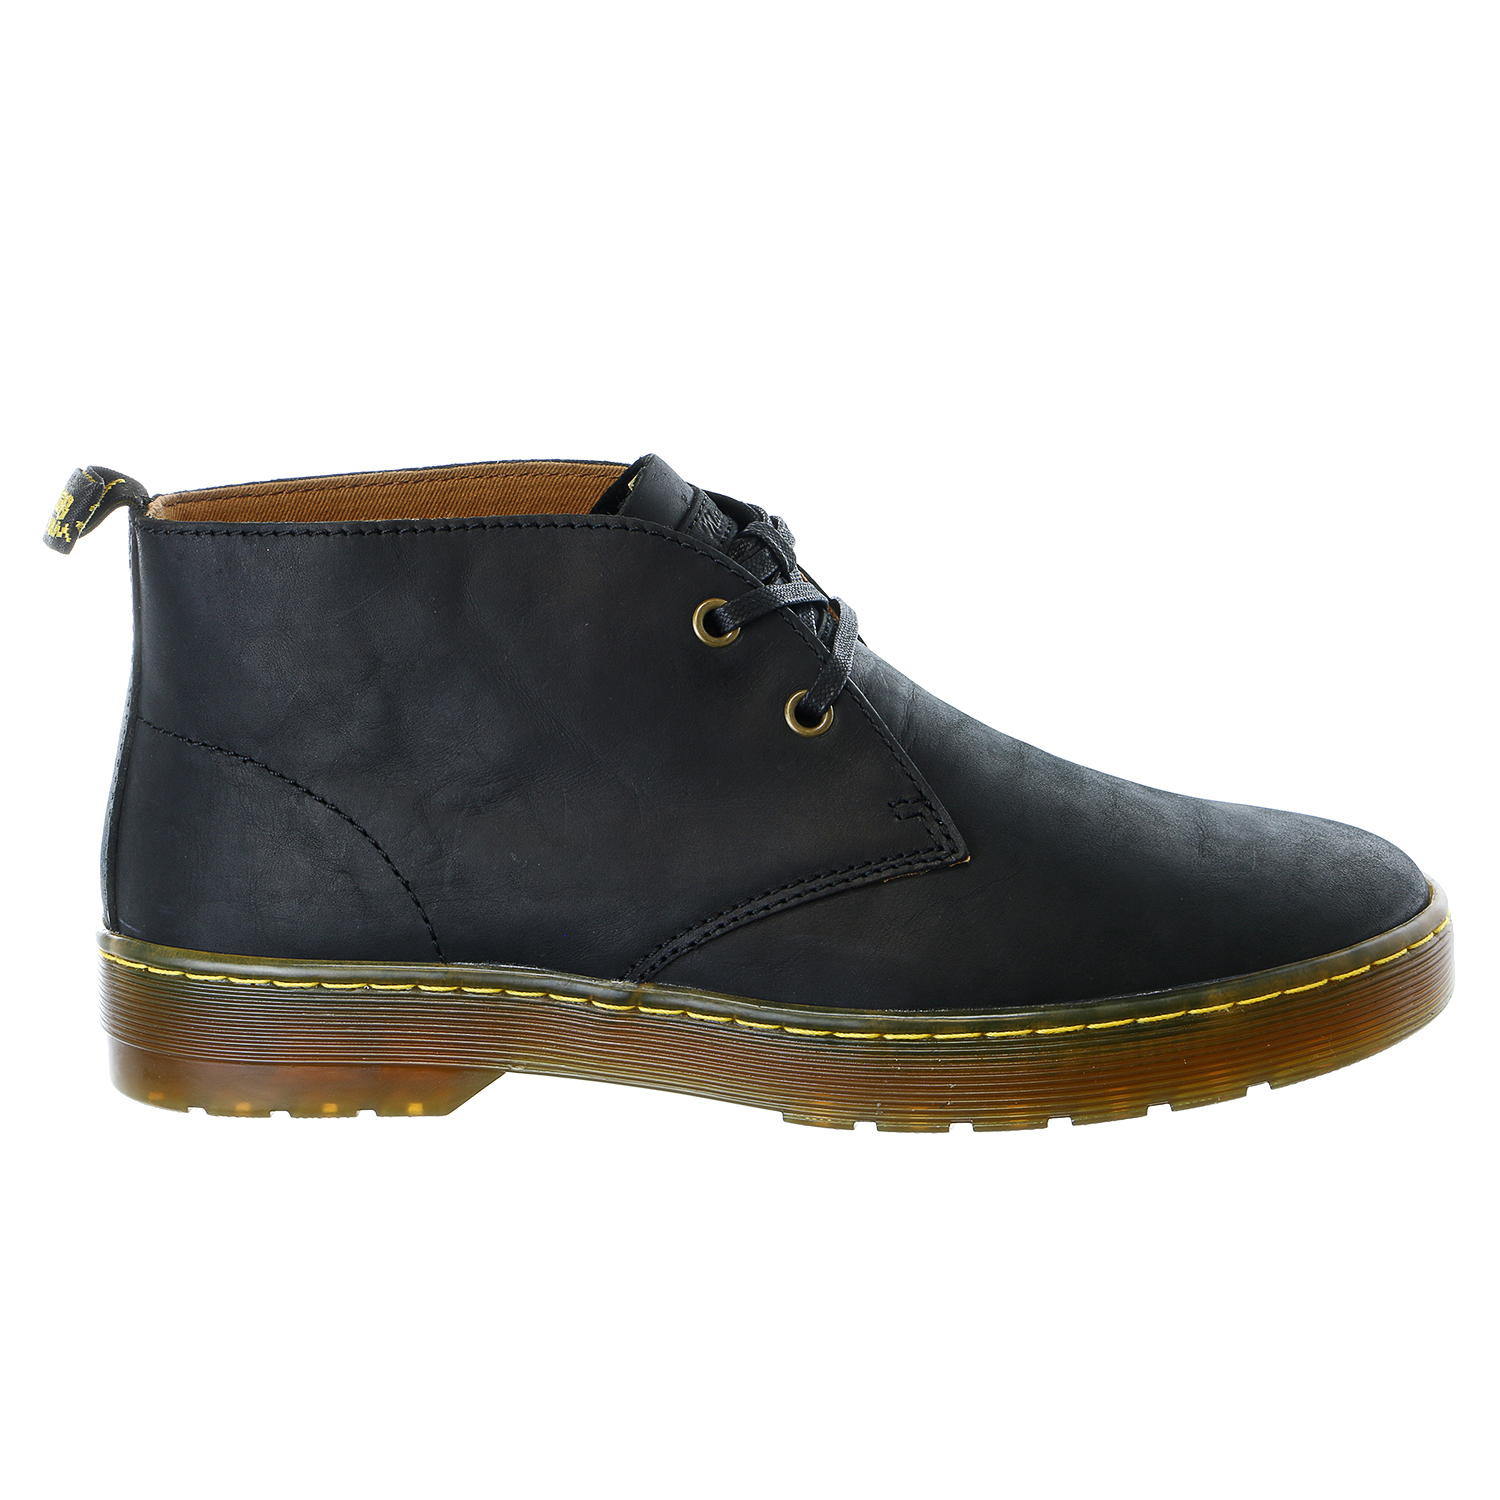 Dr. Martens Cabrillo 2 Eye Chukka Desert Boot Shoe Mens by Dr. Martens